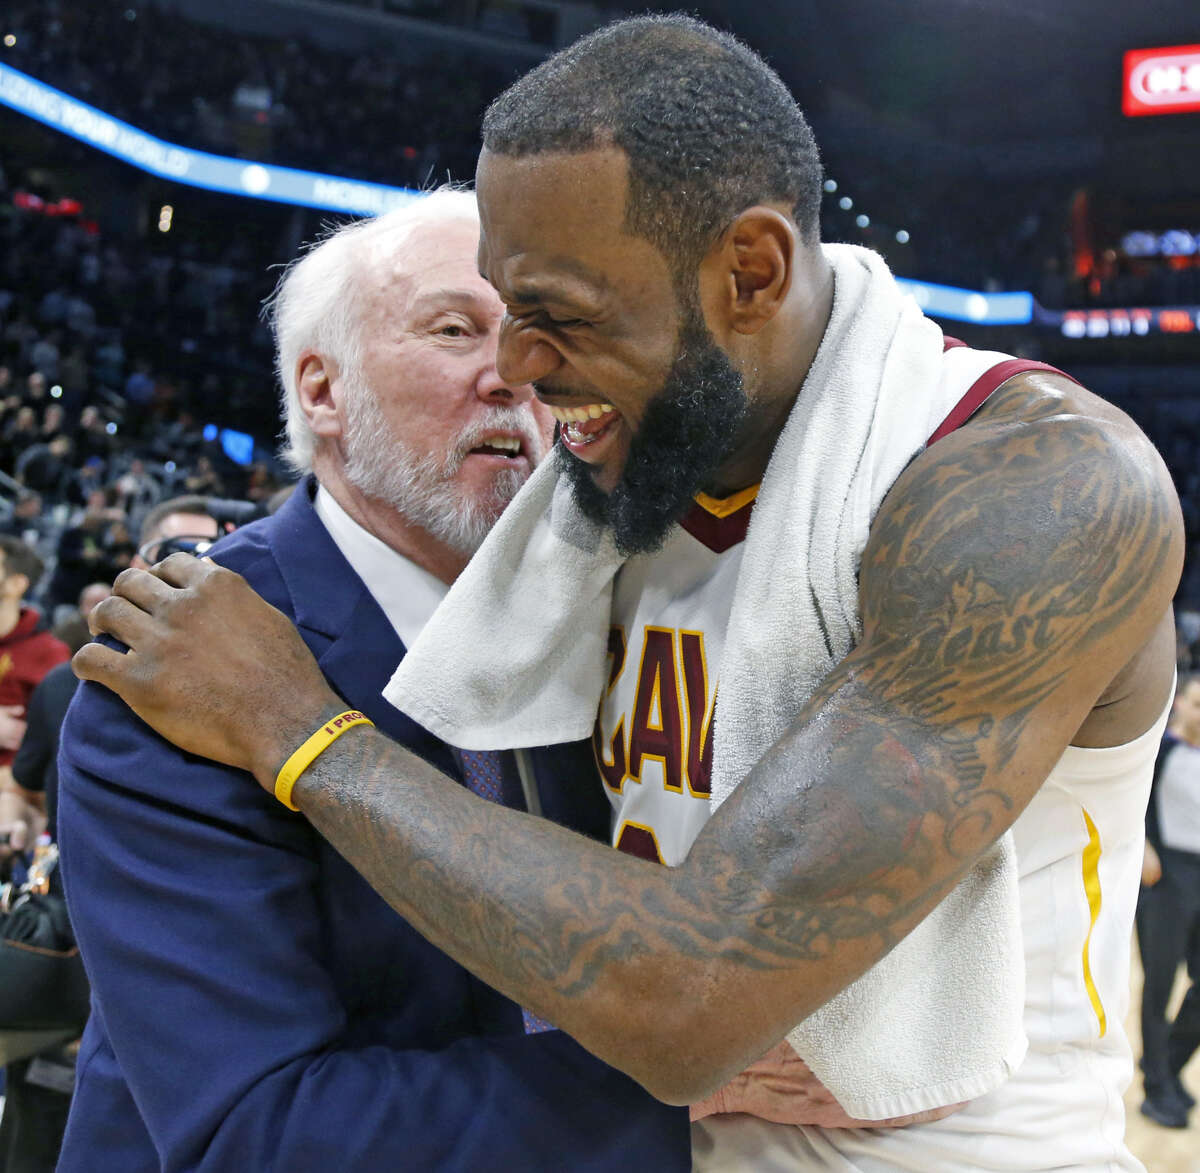 LeBron James, of the Cleveland Cavaliers, took time to send condolences to Spurs Coach Gregg Popovich and his family following the loss of his wife and to defend sideline reporter Allie LaForce.